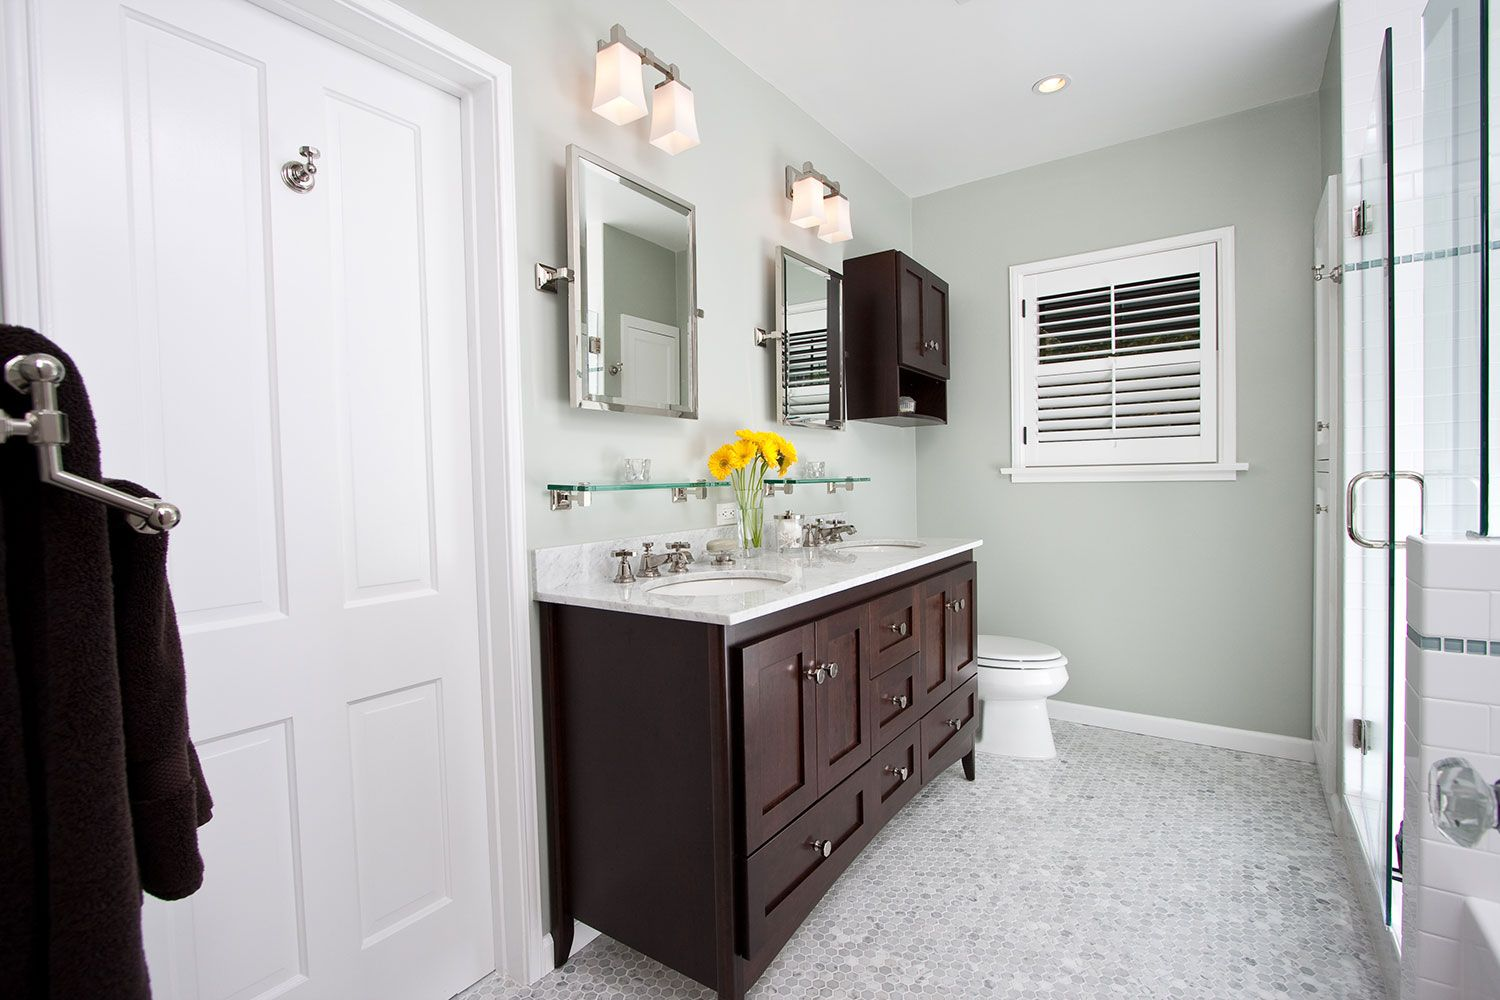 We Bring Our Mobile Showroom Of Bathroom Products To Walk Through